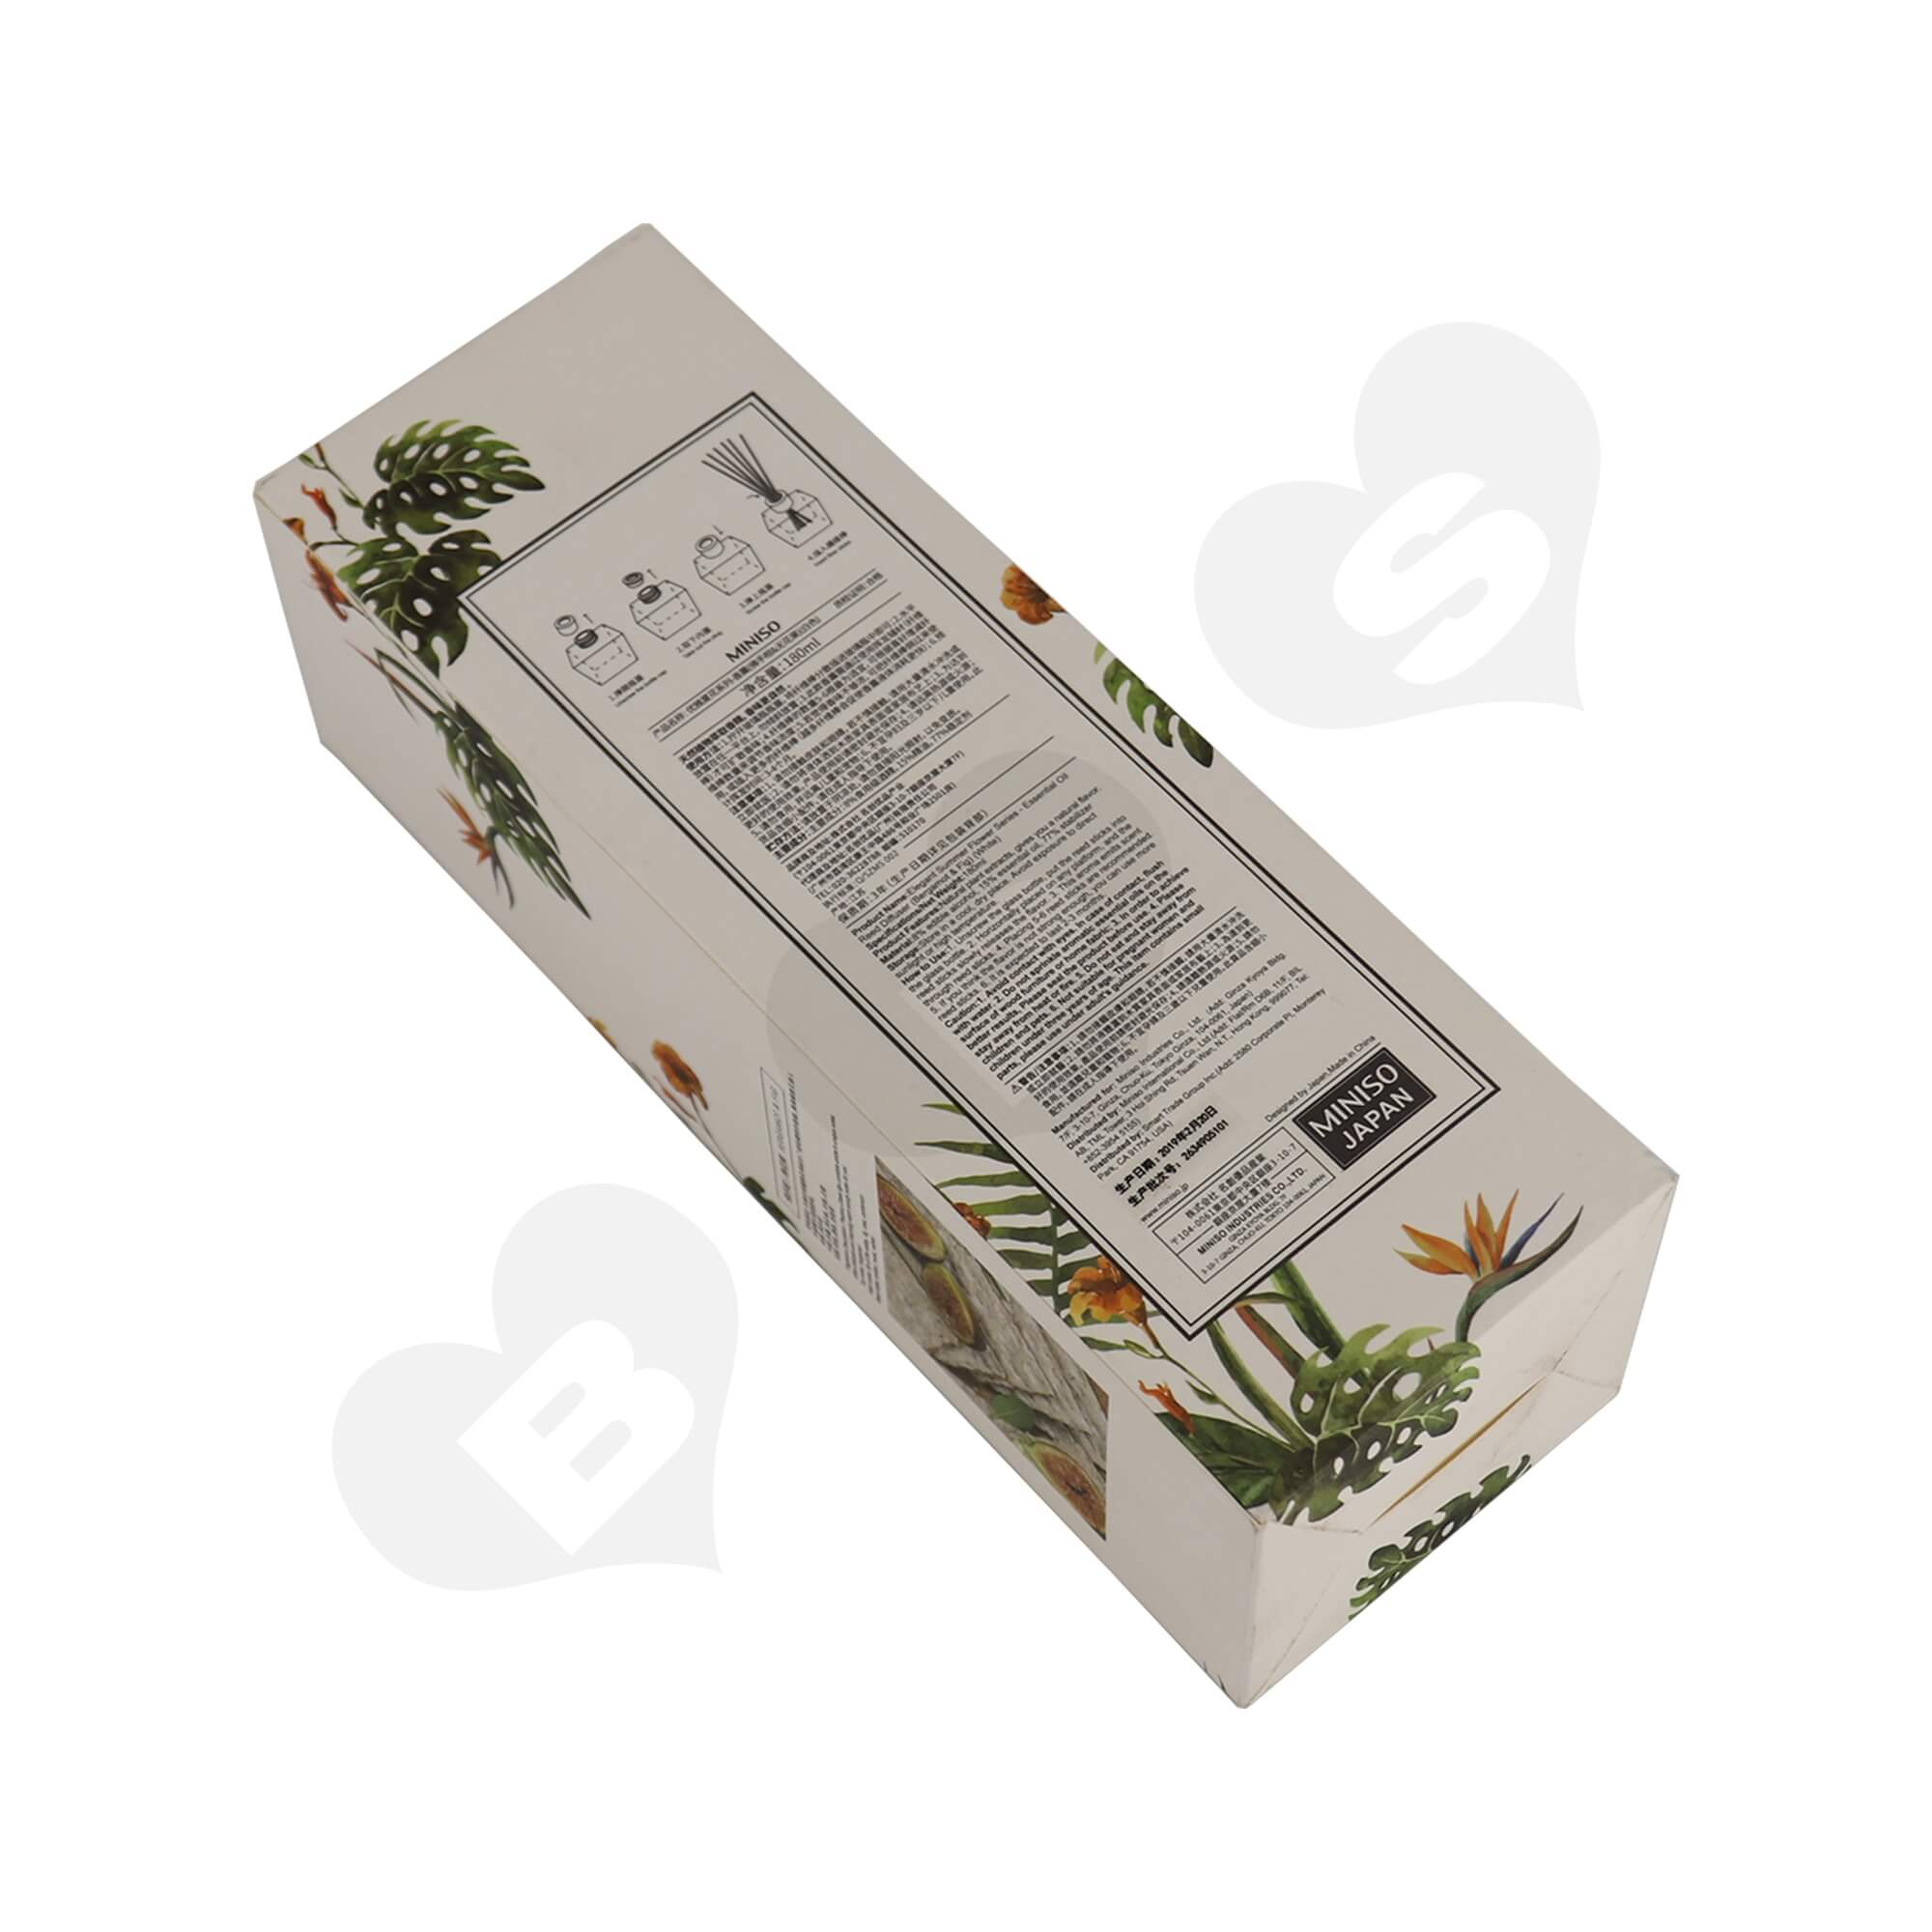 Cardboard Folding Carton For Packing Scent Diffuser With Testing Valve Side View Eight